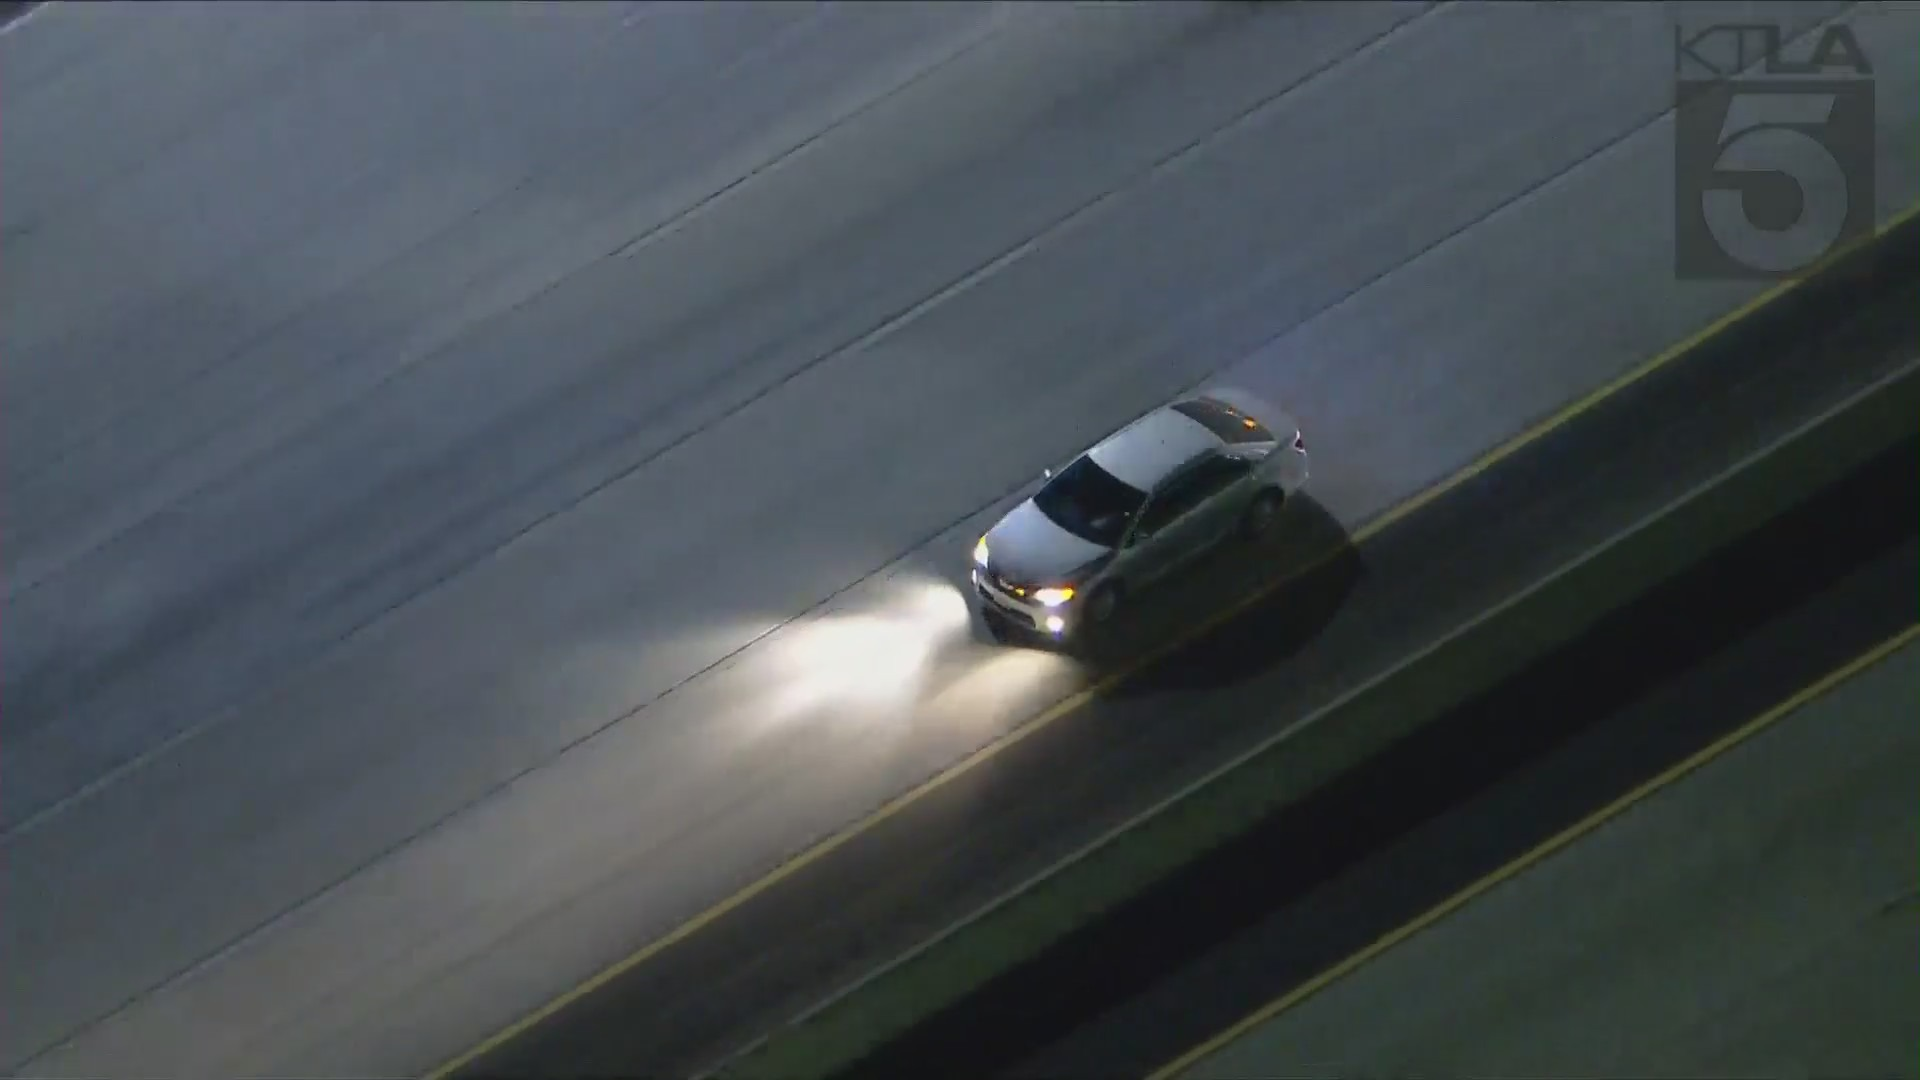 The California Highway Patrol was in pursuit of a vehicle in the San Fernando Valley Wednesday night. Sky5 was overhead.